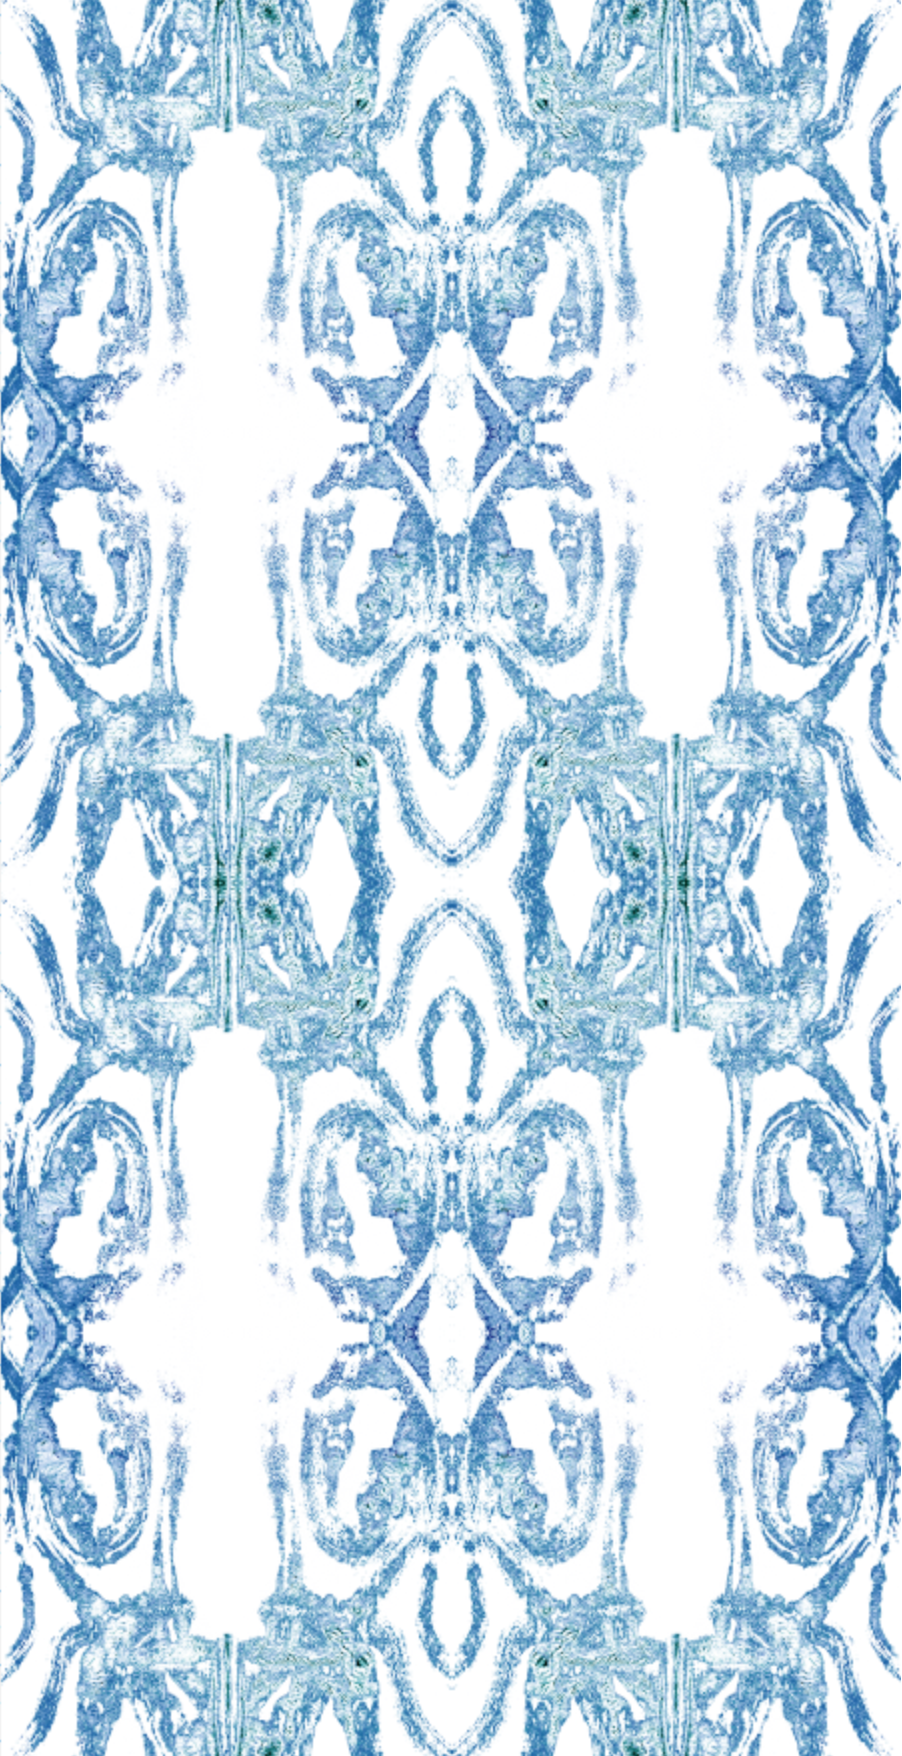 blue damask wallpaper, blue green wallpaper, charleston artist textiles, charleston wallpaper, powder room wallpaper decor, powder room design